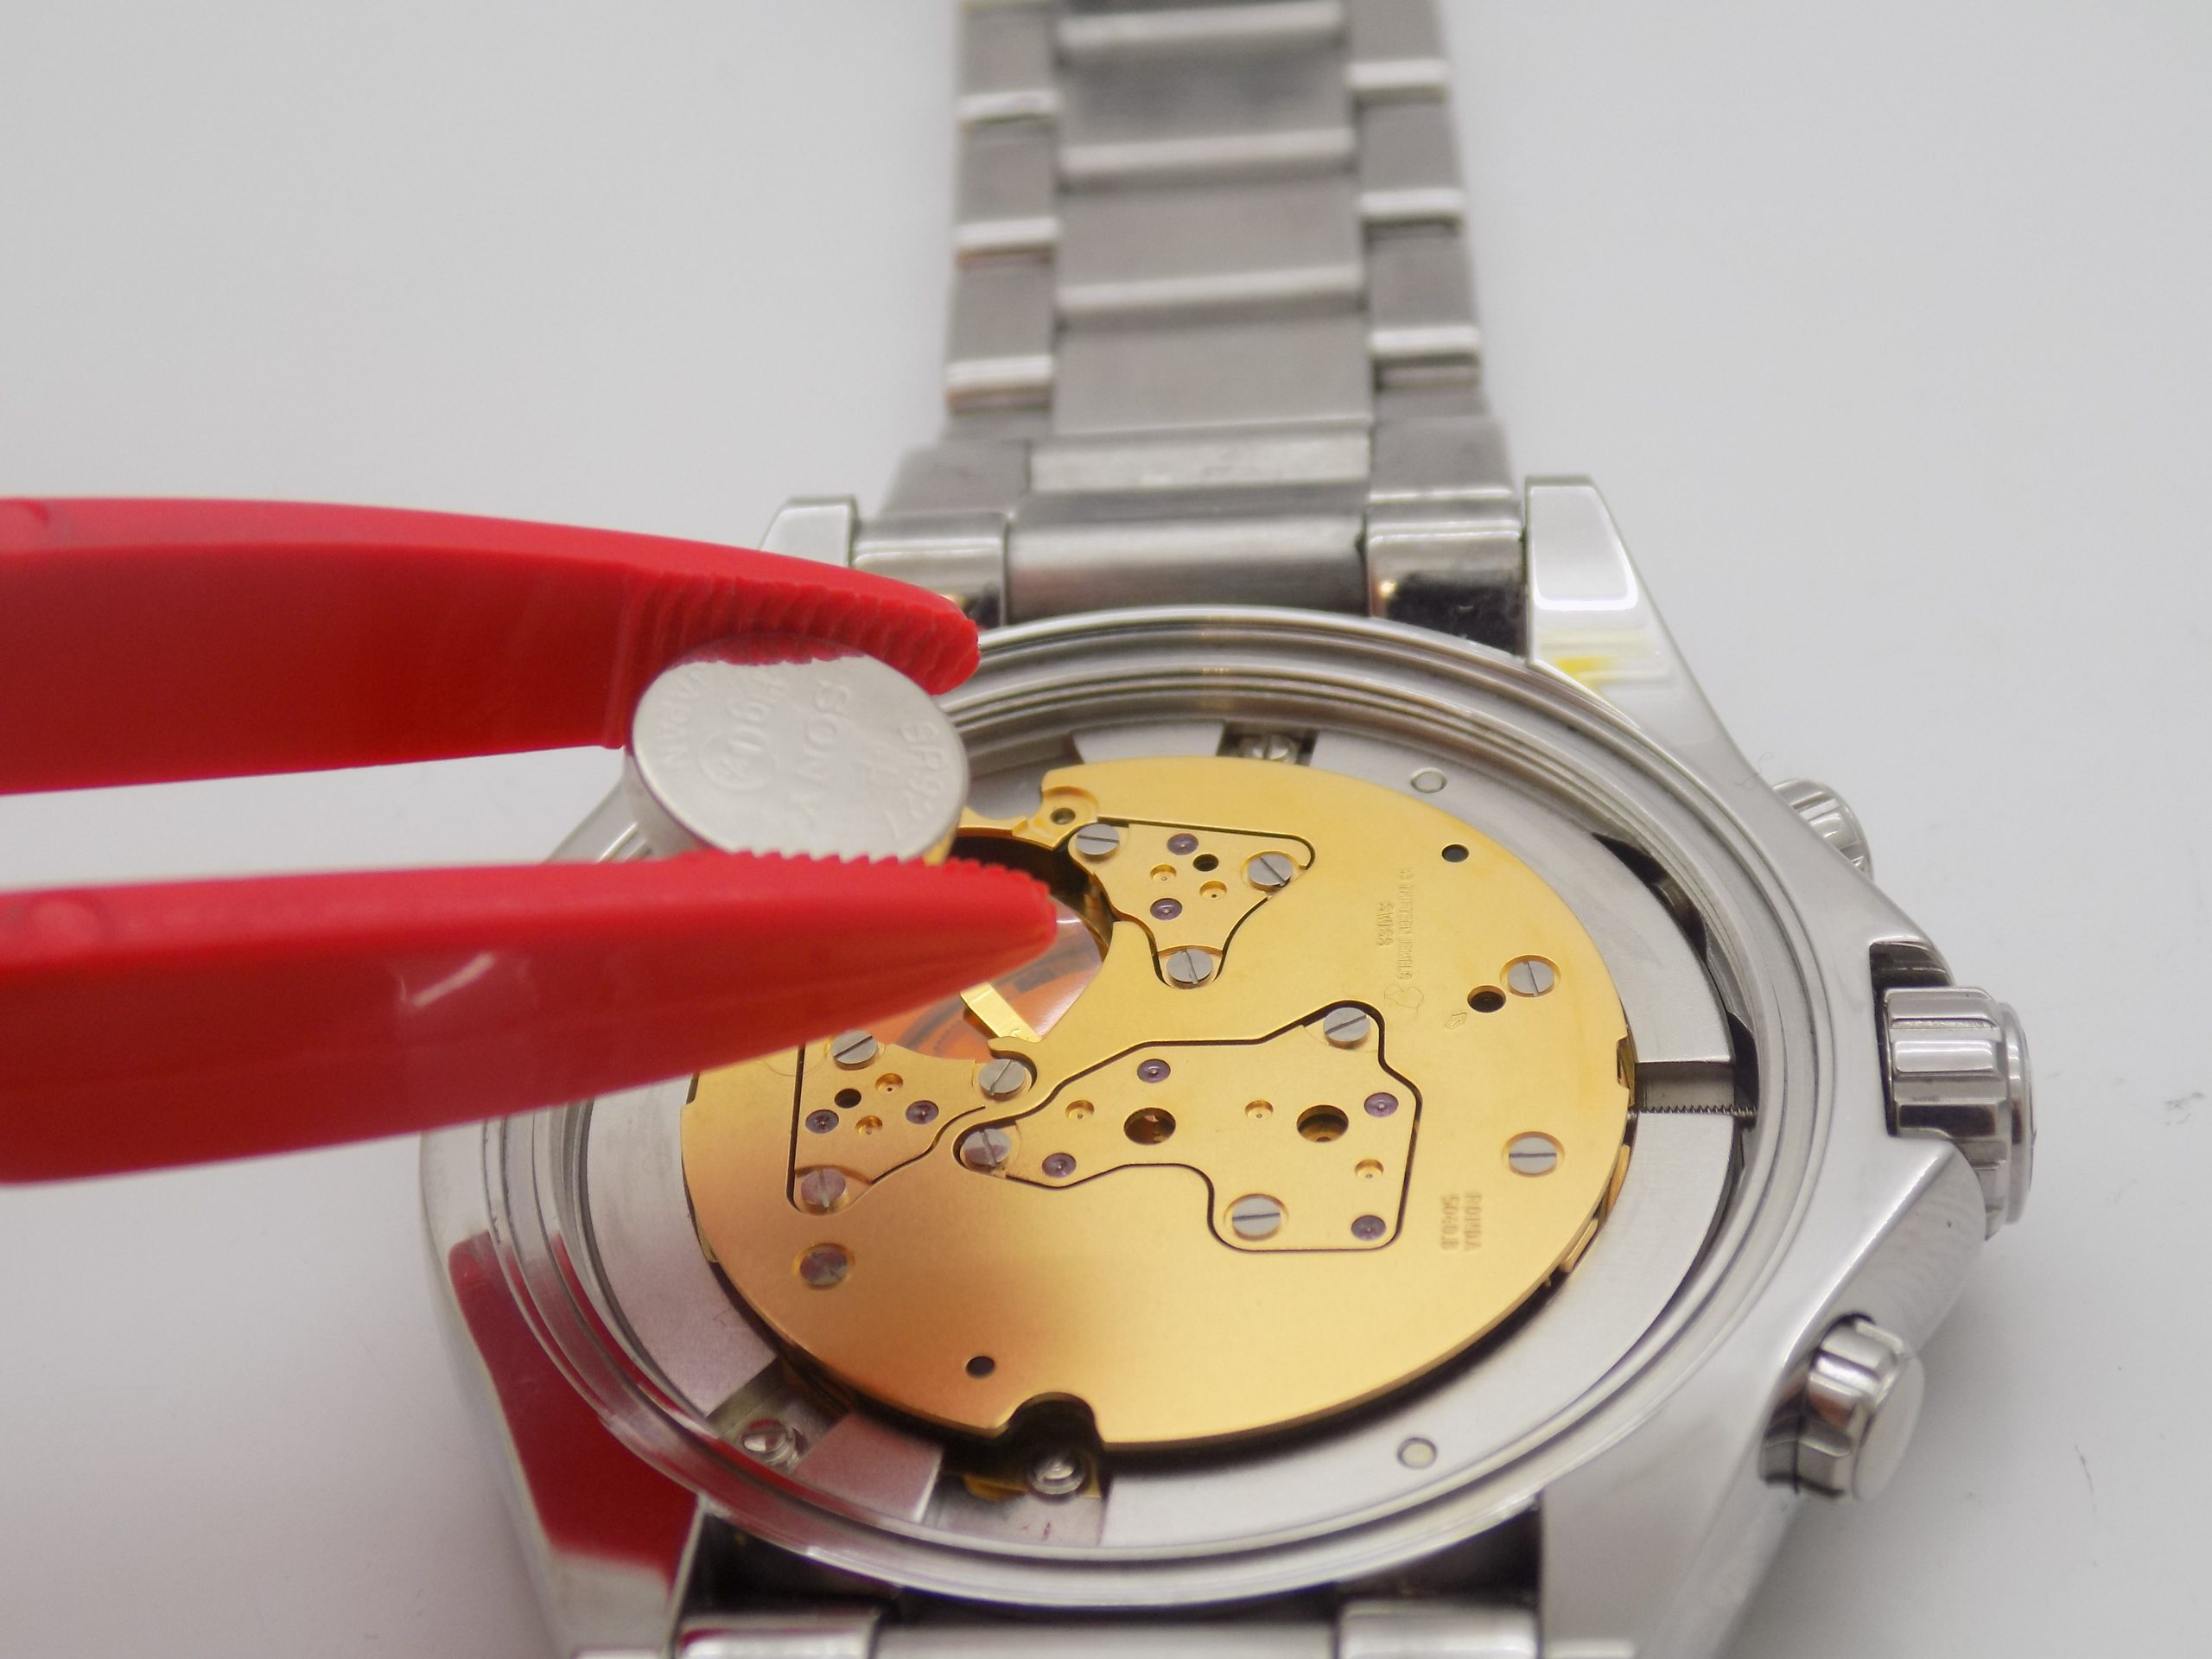 Watch battery being replaced